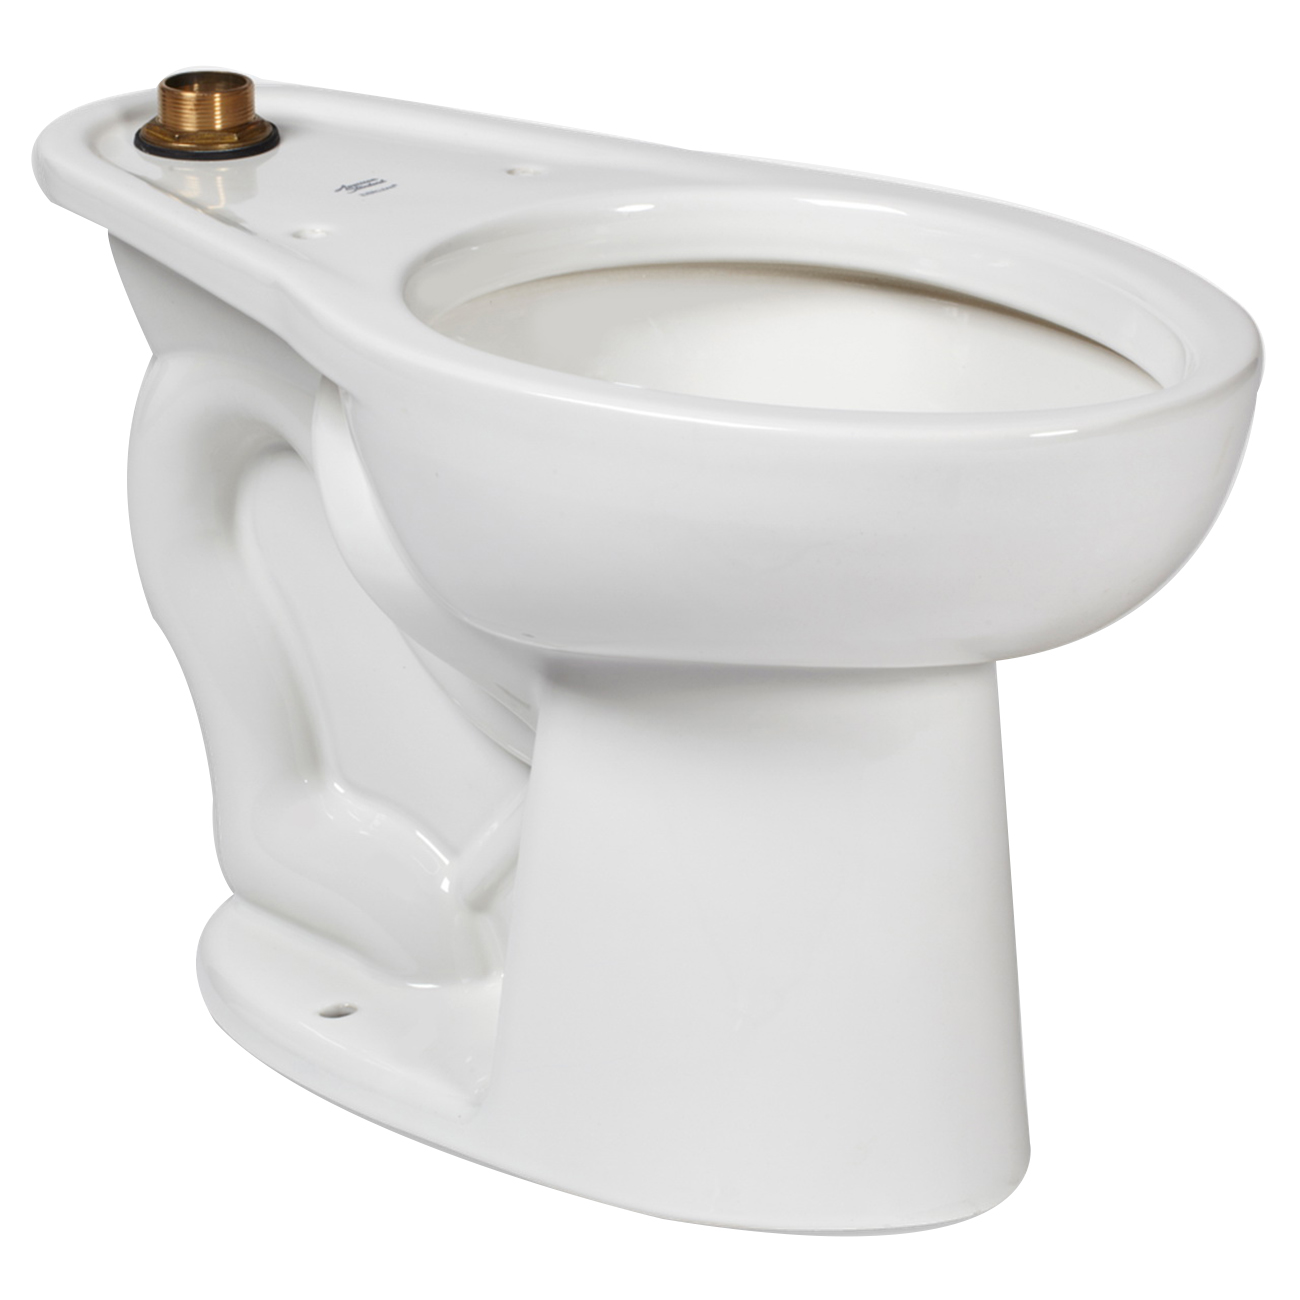 American Standard Madera™ FloWise® 3461.001.020 White Vitreous China Elongated Toilet Bowl, 12 in Rough-In, 1.1 - 1.6 gpf